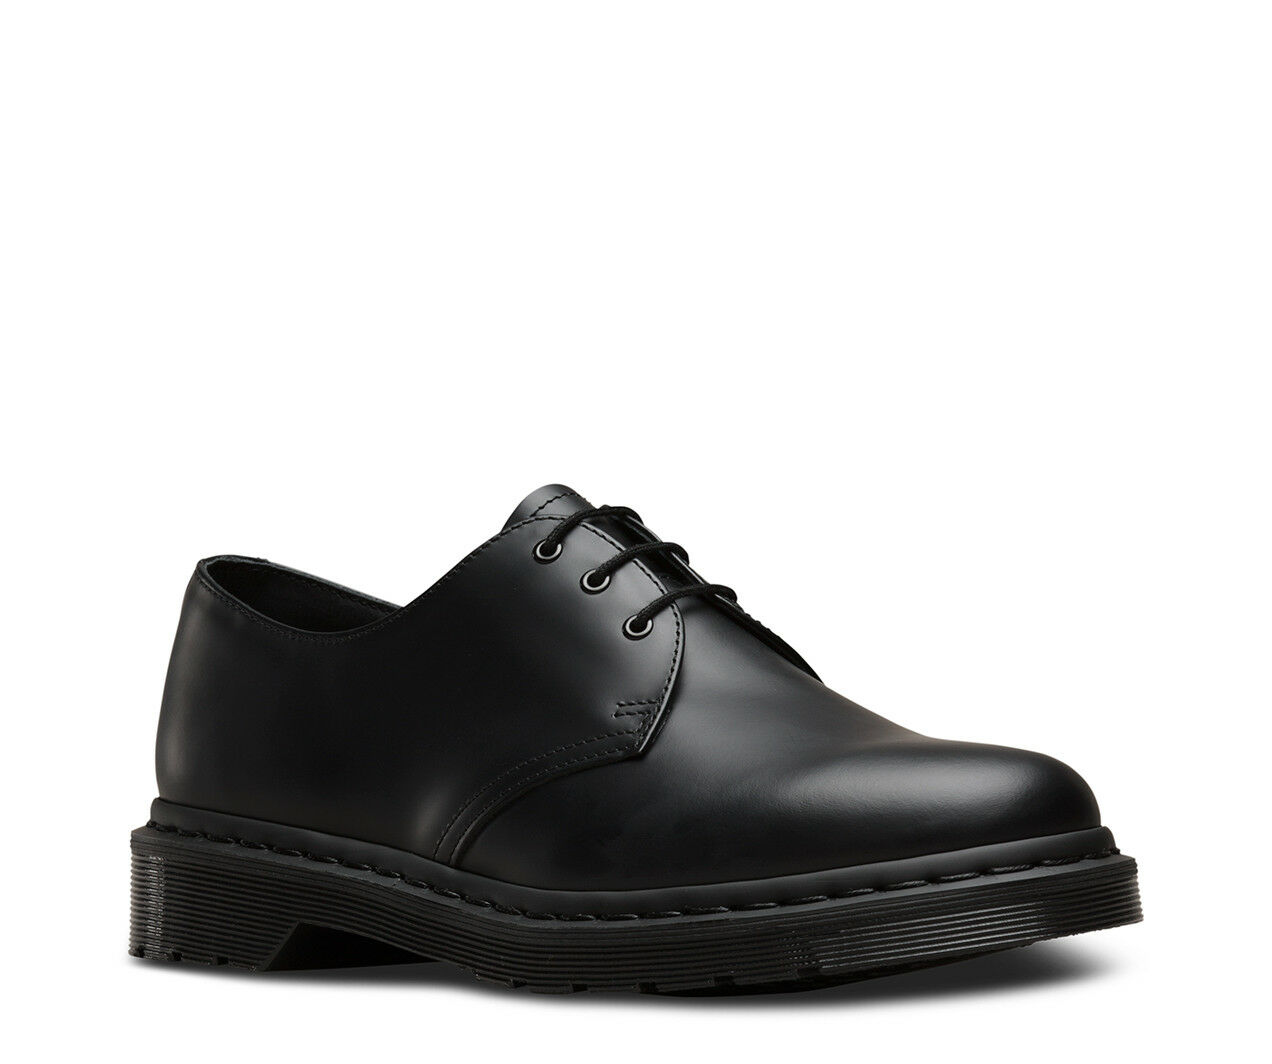 New Hommes Dr Martens 1461 3 Eye Noir Lisse Mono Cuir Oxford Chaussures